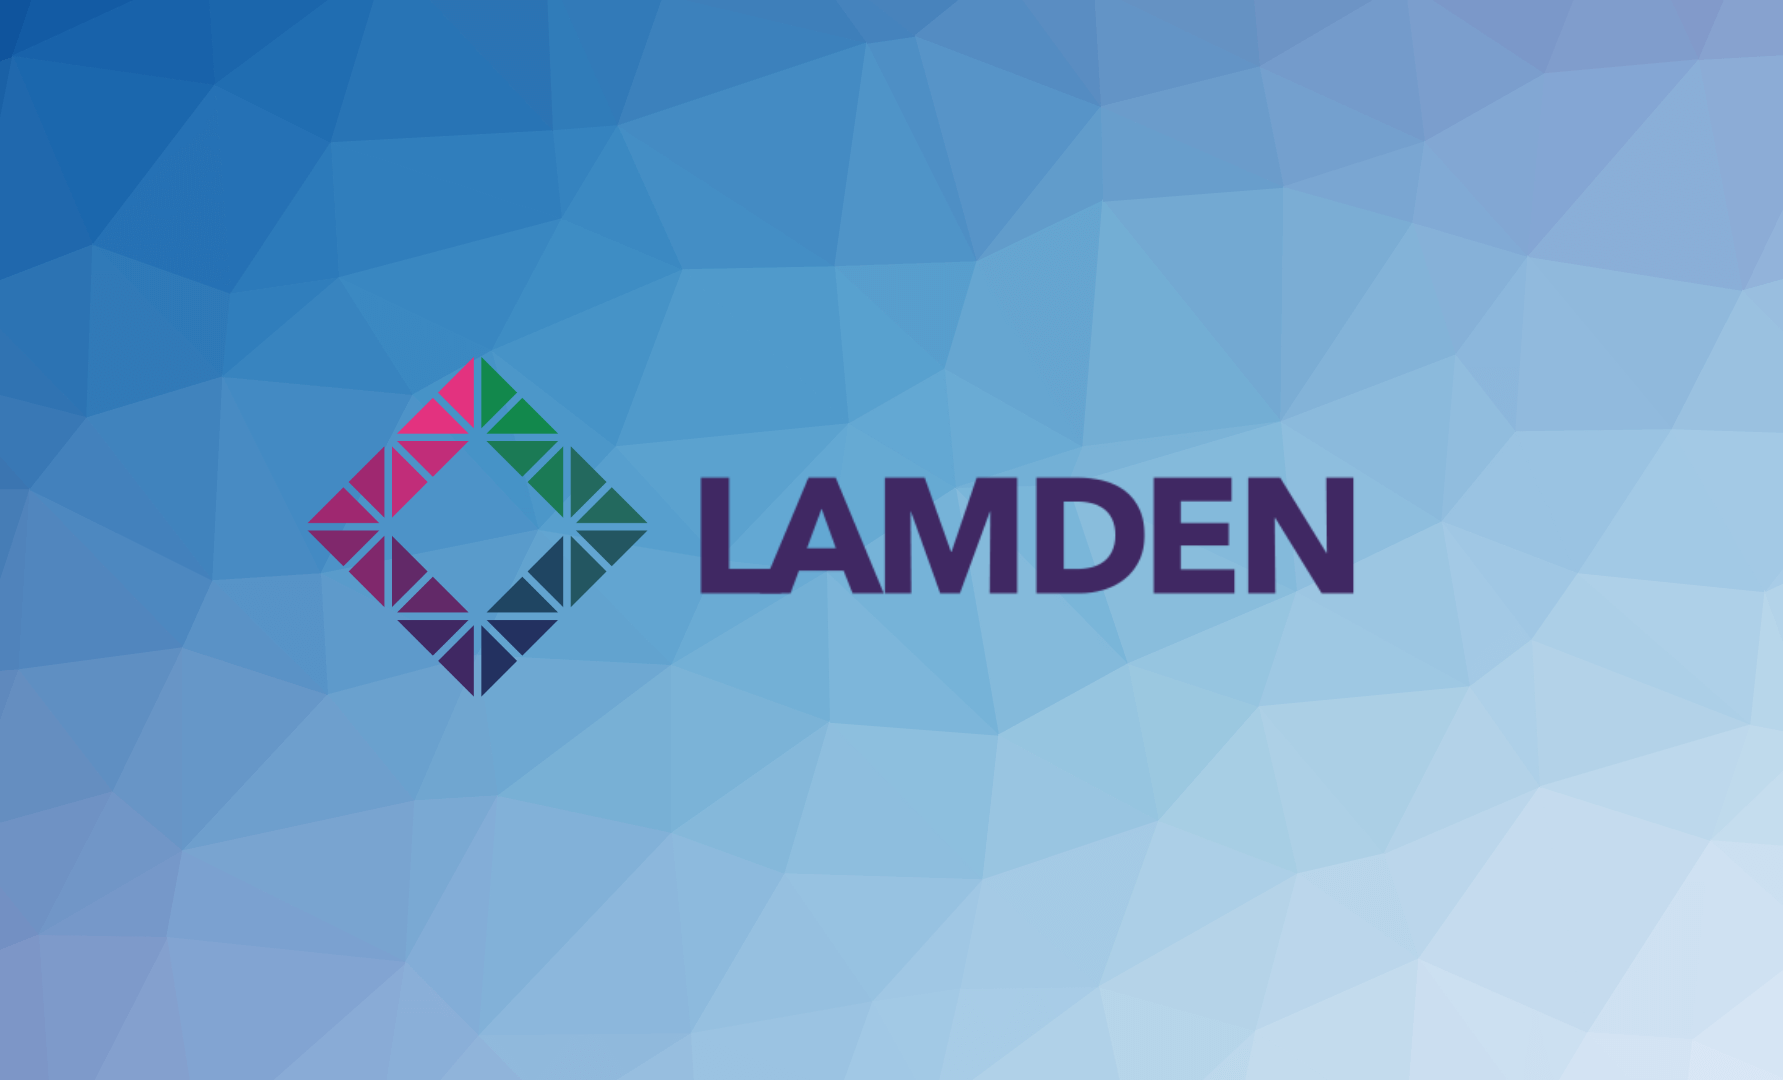 Background-Lamden